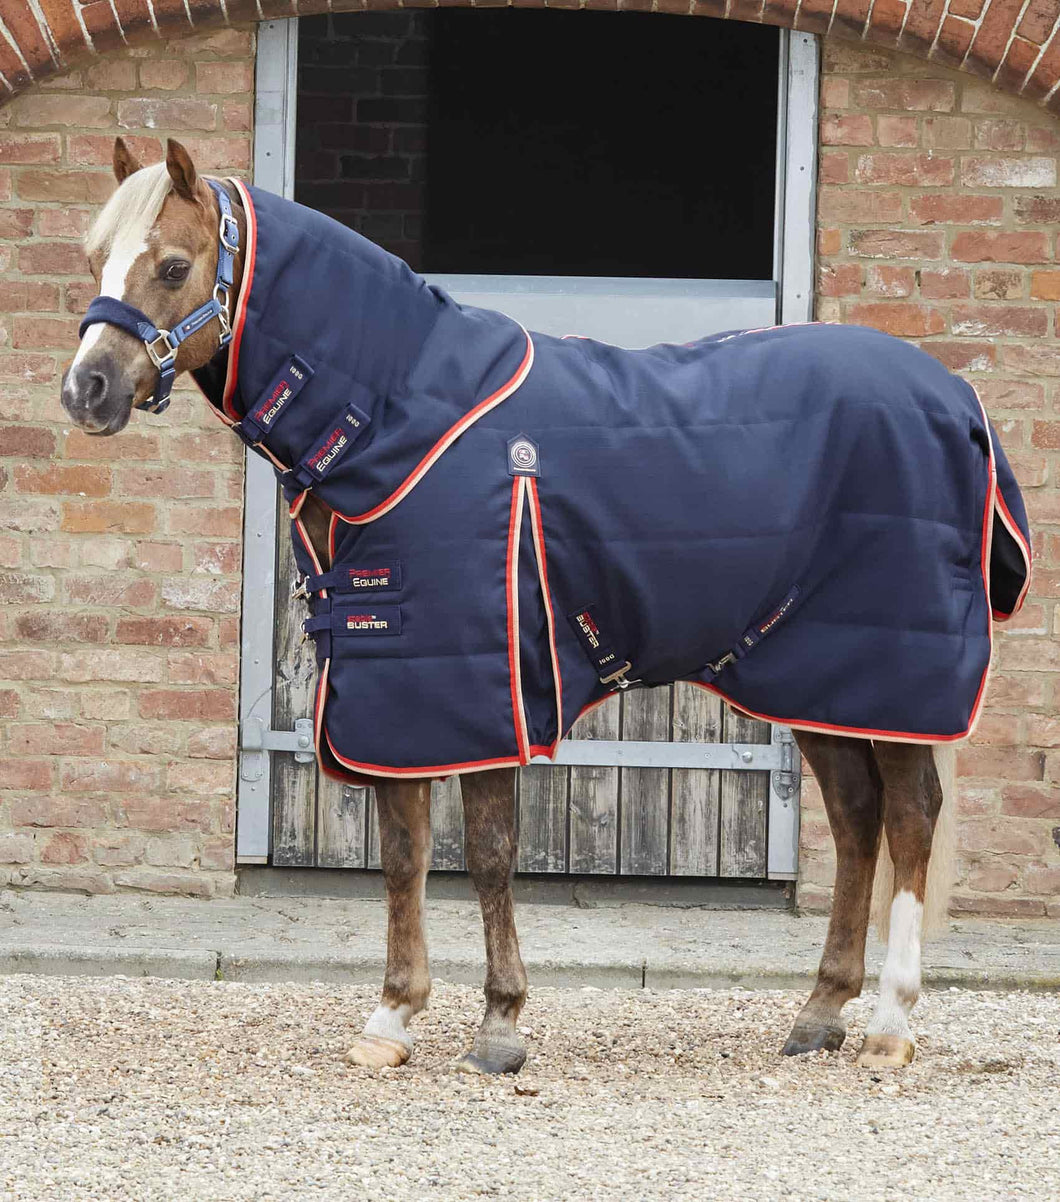 Premier Equine Pony Stable Buster 100g Stable Rug with Neck Cover